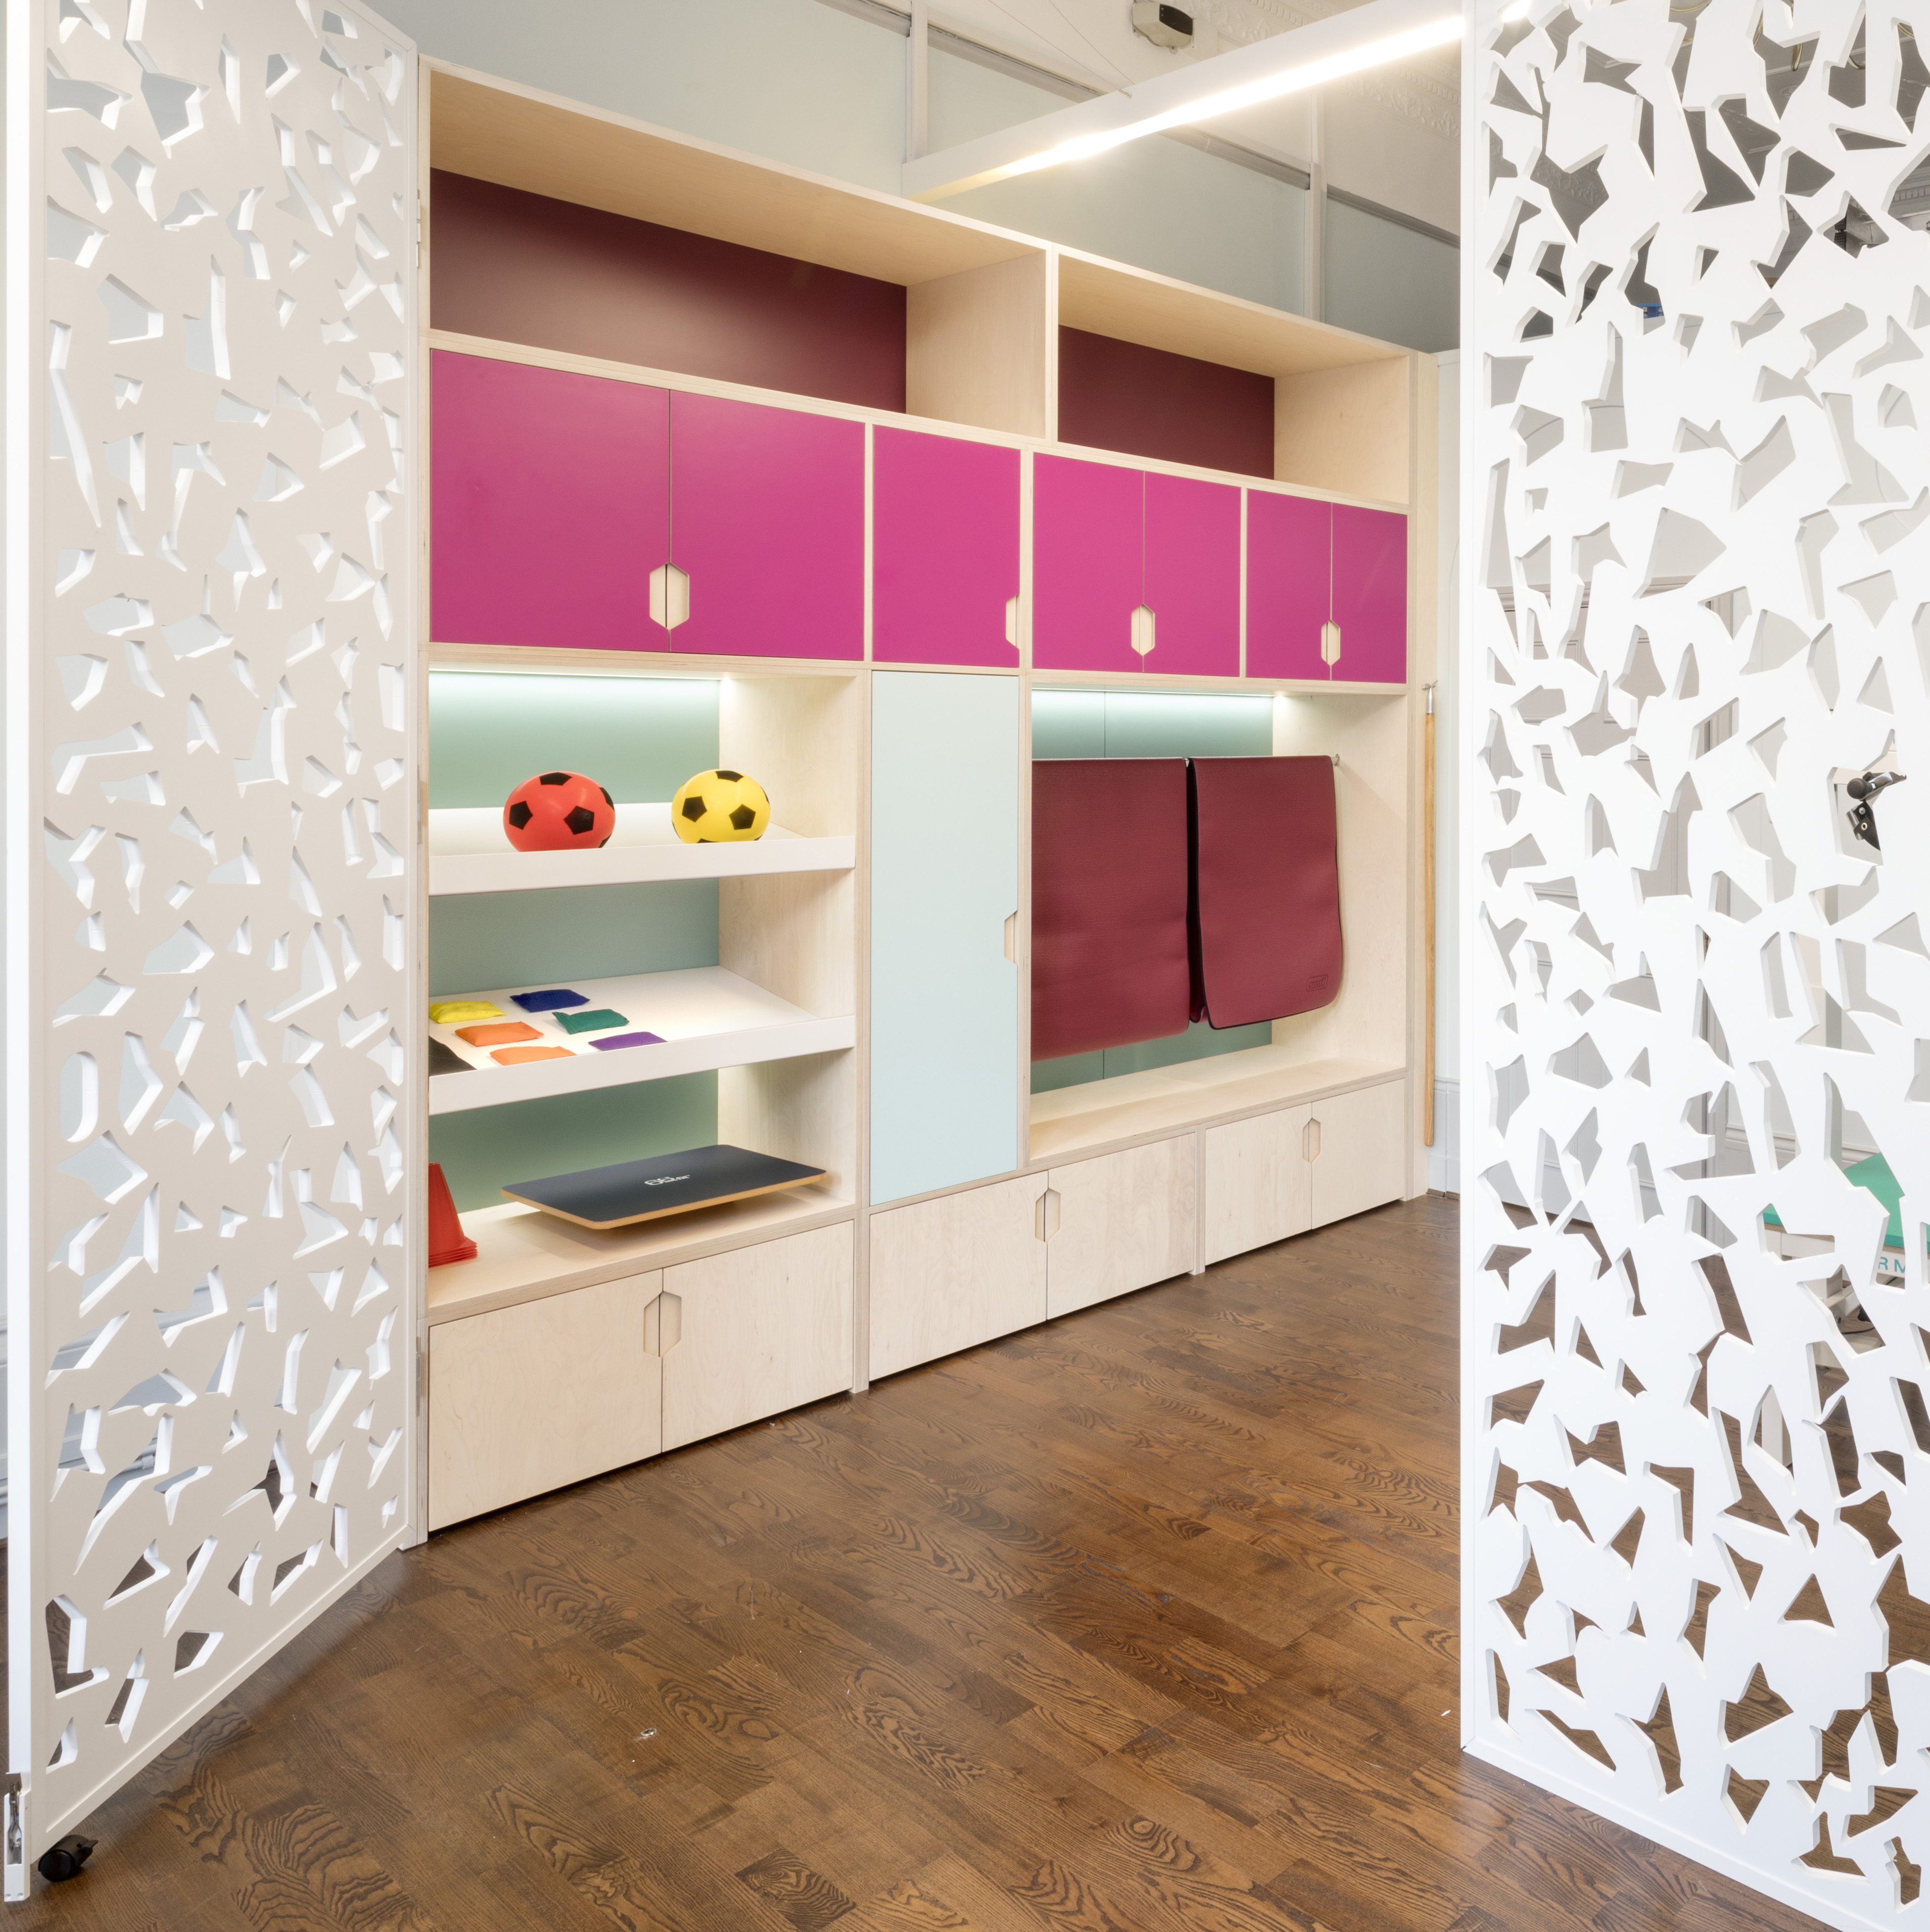 Custom storage units in pop colours and open shelving in healthcare clinic